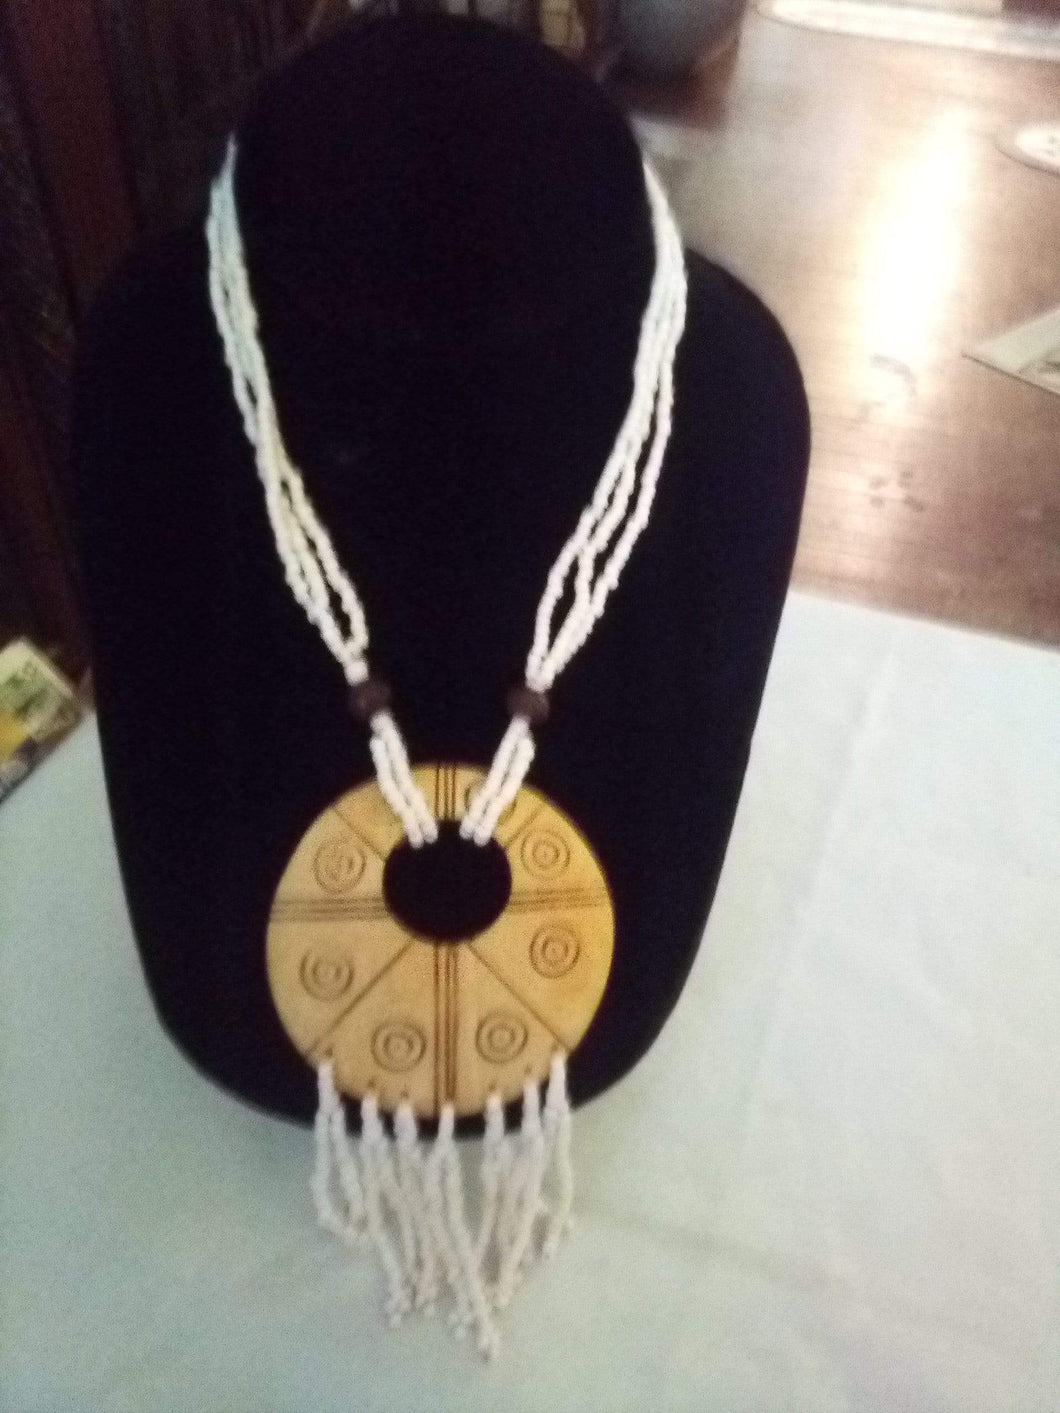 Unique tiny beaded necklace with wood pendent - B&P'sringsnthings